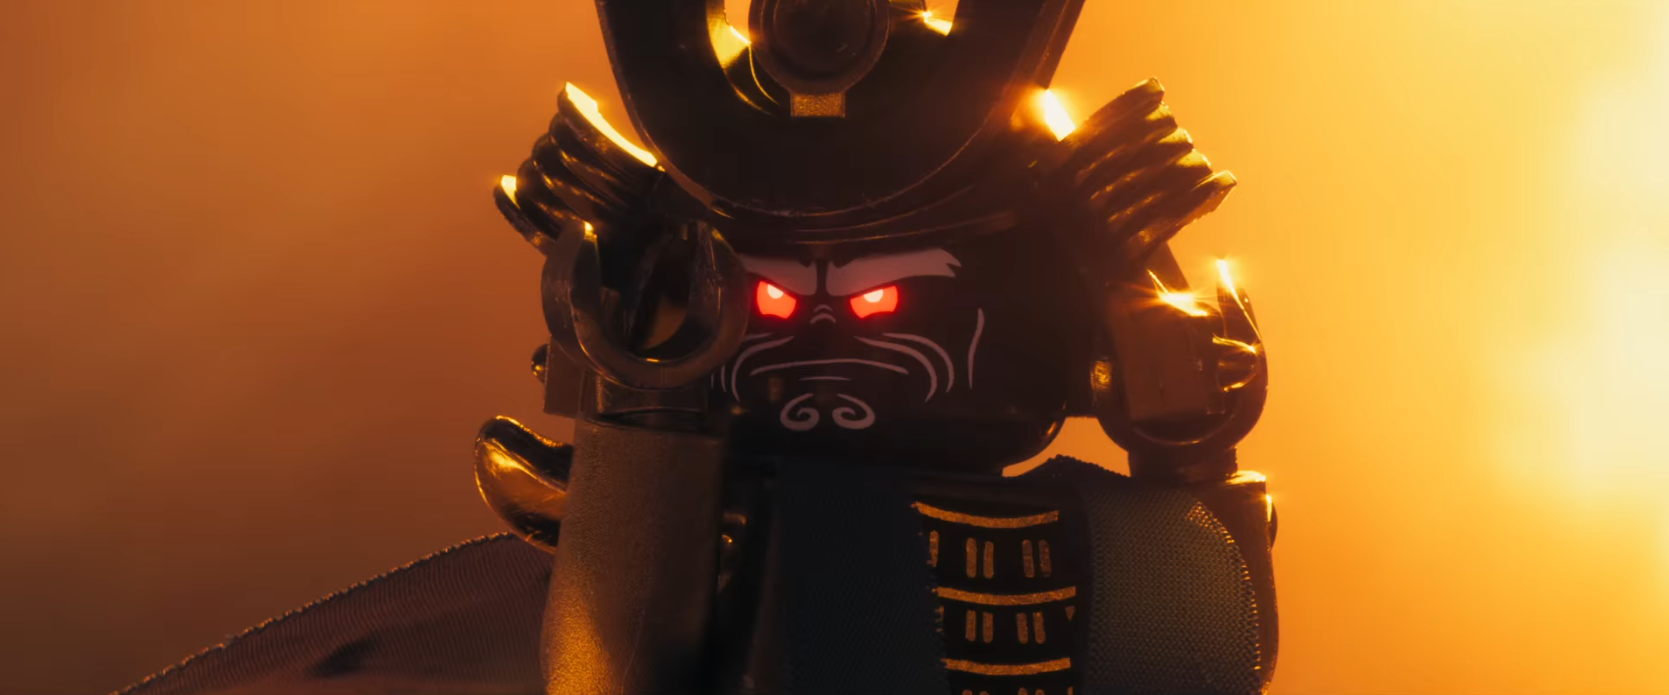 The LEGO Ninjago Movie Trailer is here and it is dope!